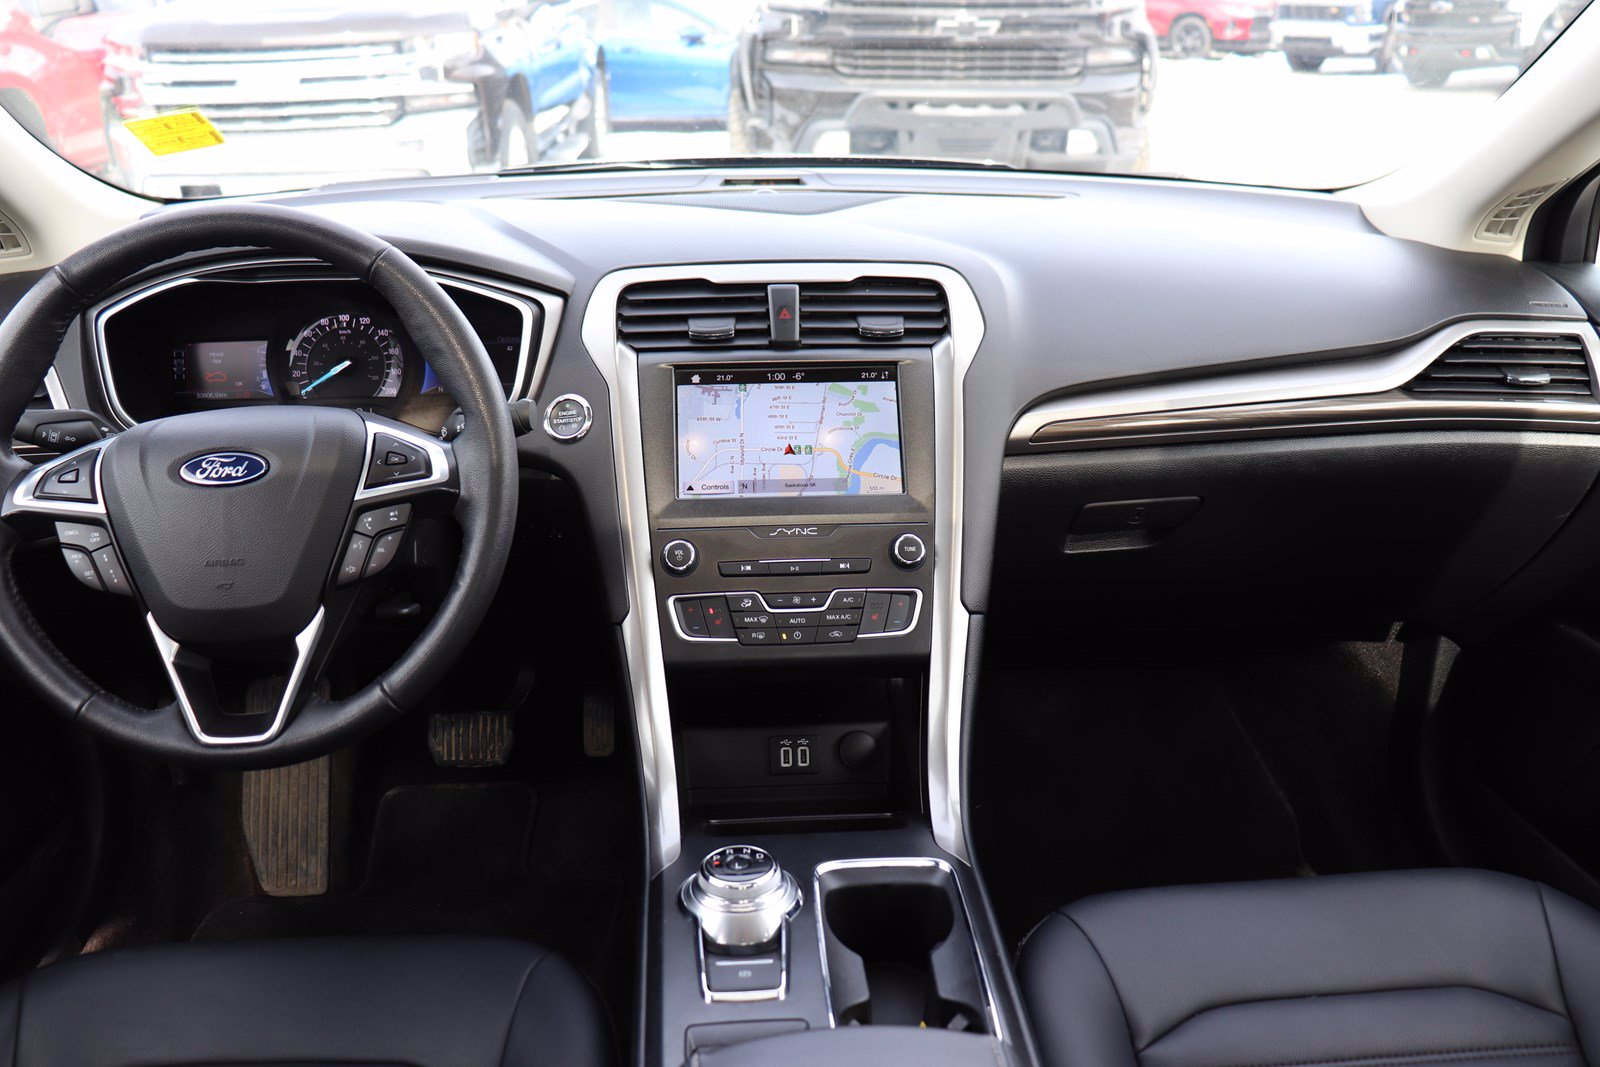 Certified Pre-Owned 2019 Ford Fusion Hybrid SEL - Leather, Sunroof, Blind Spot Monitoring